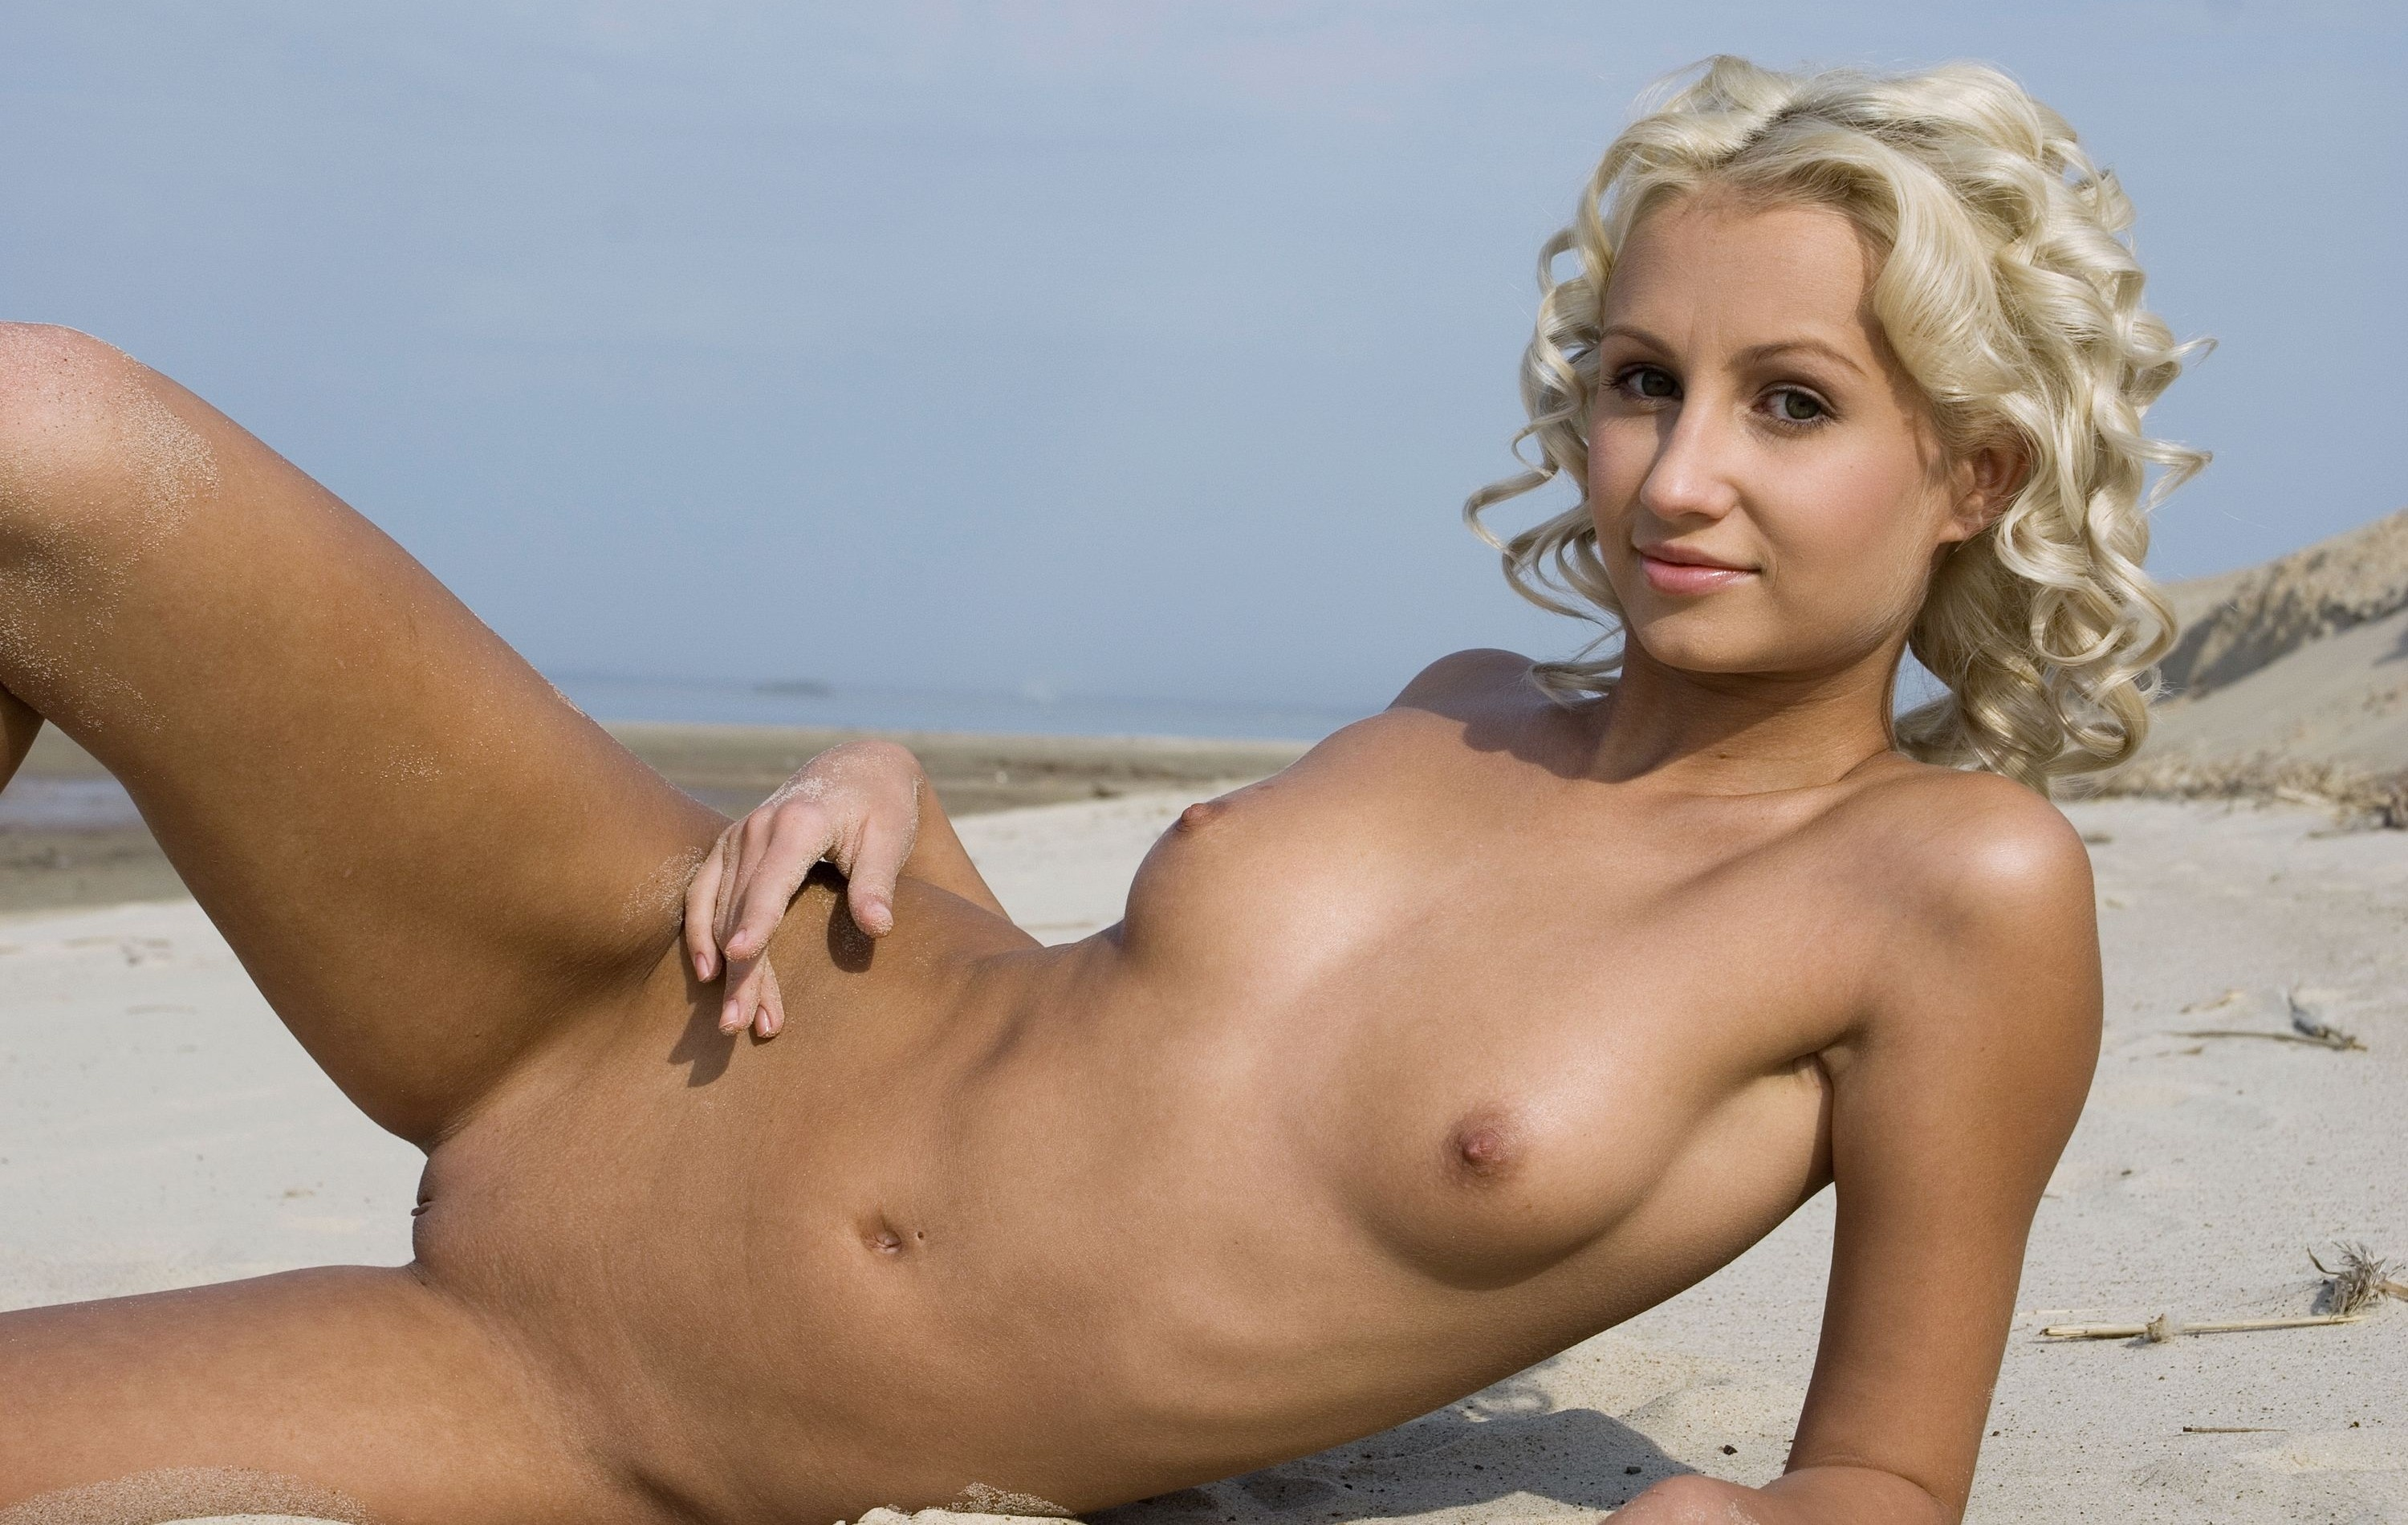 Blonde Beach Girl Natural Pussy